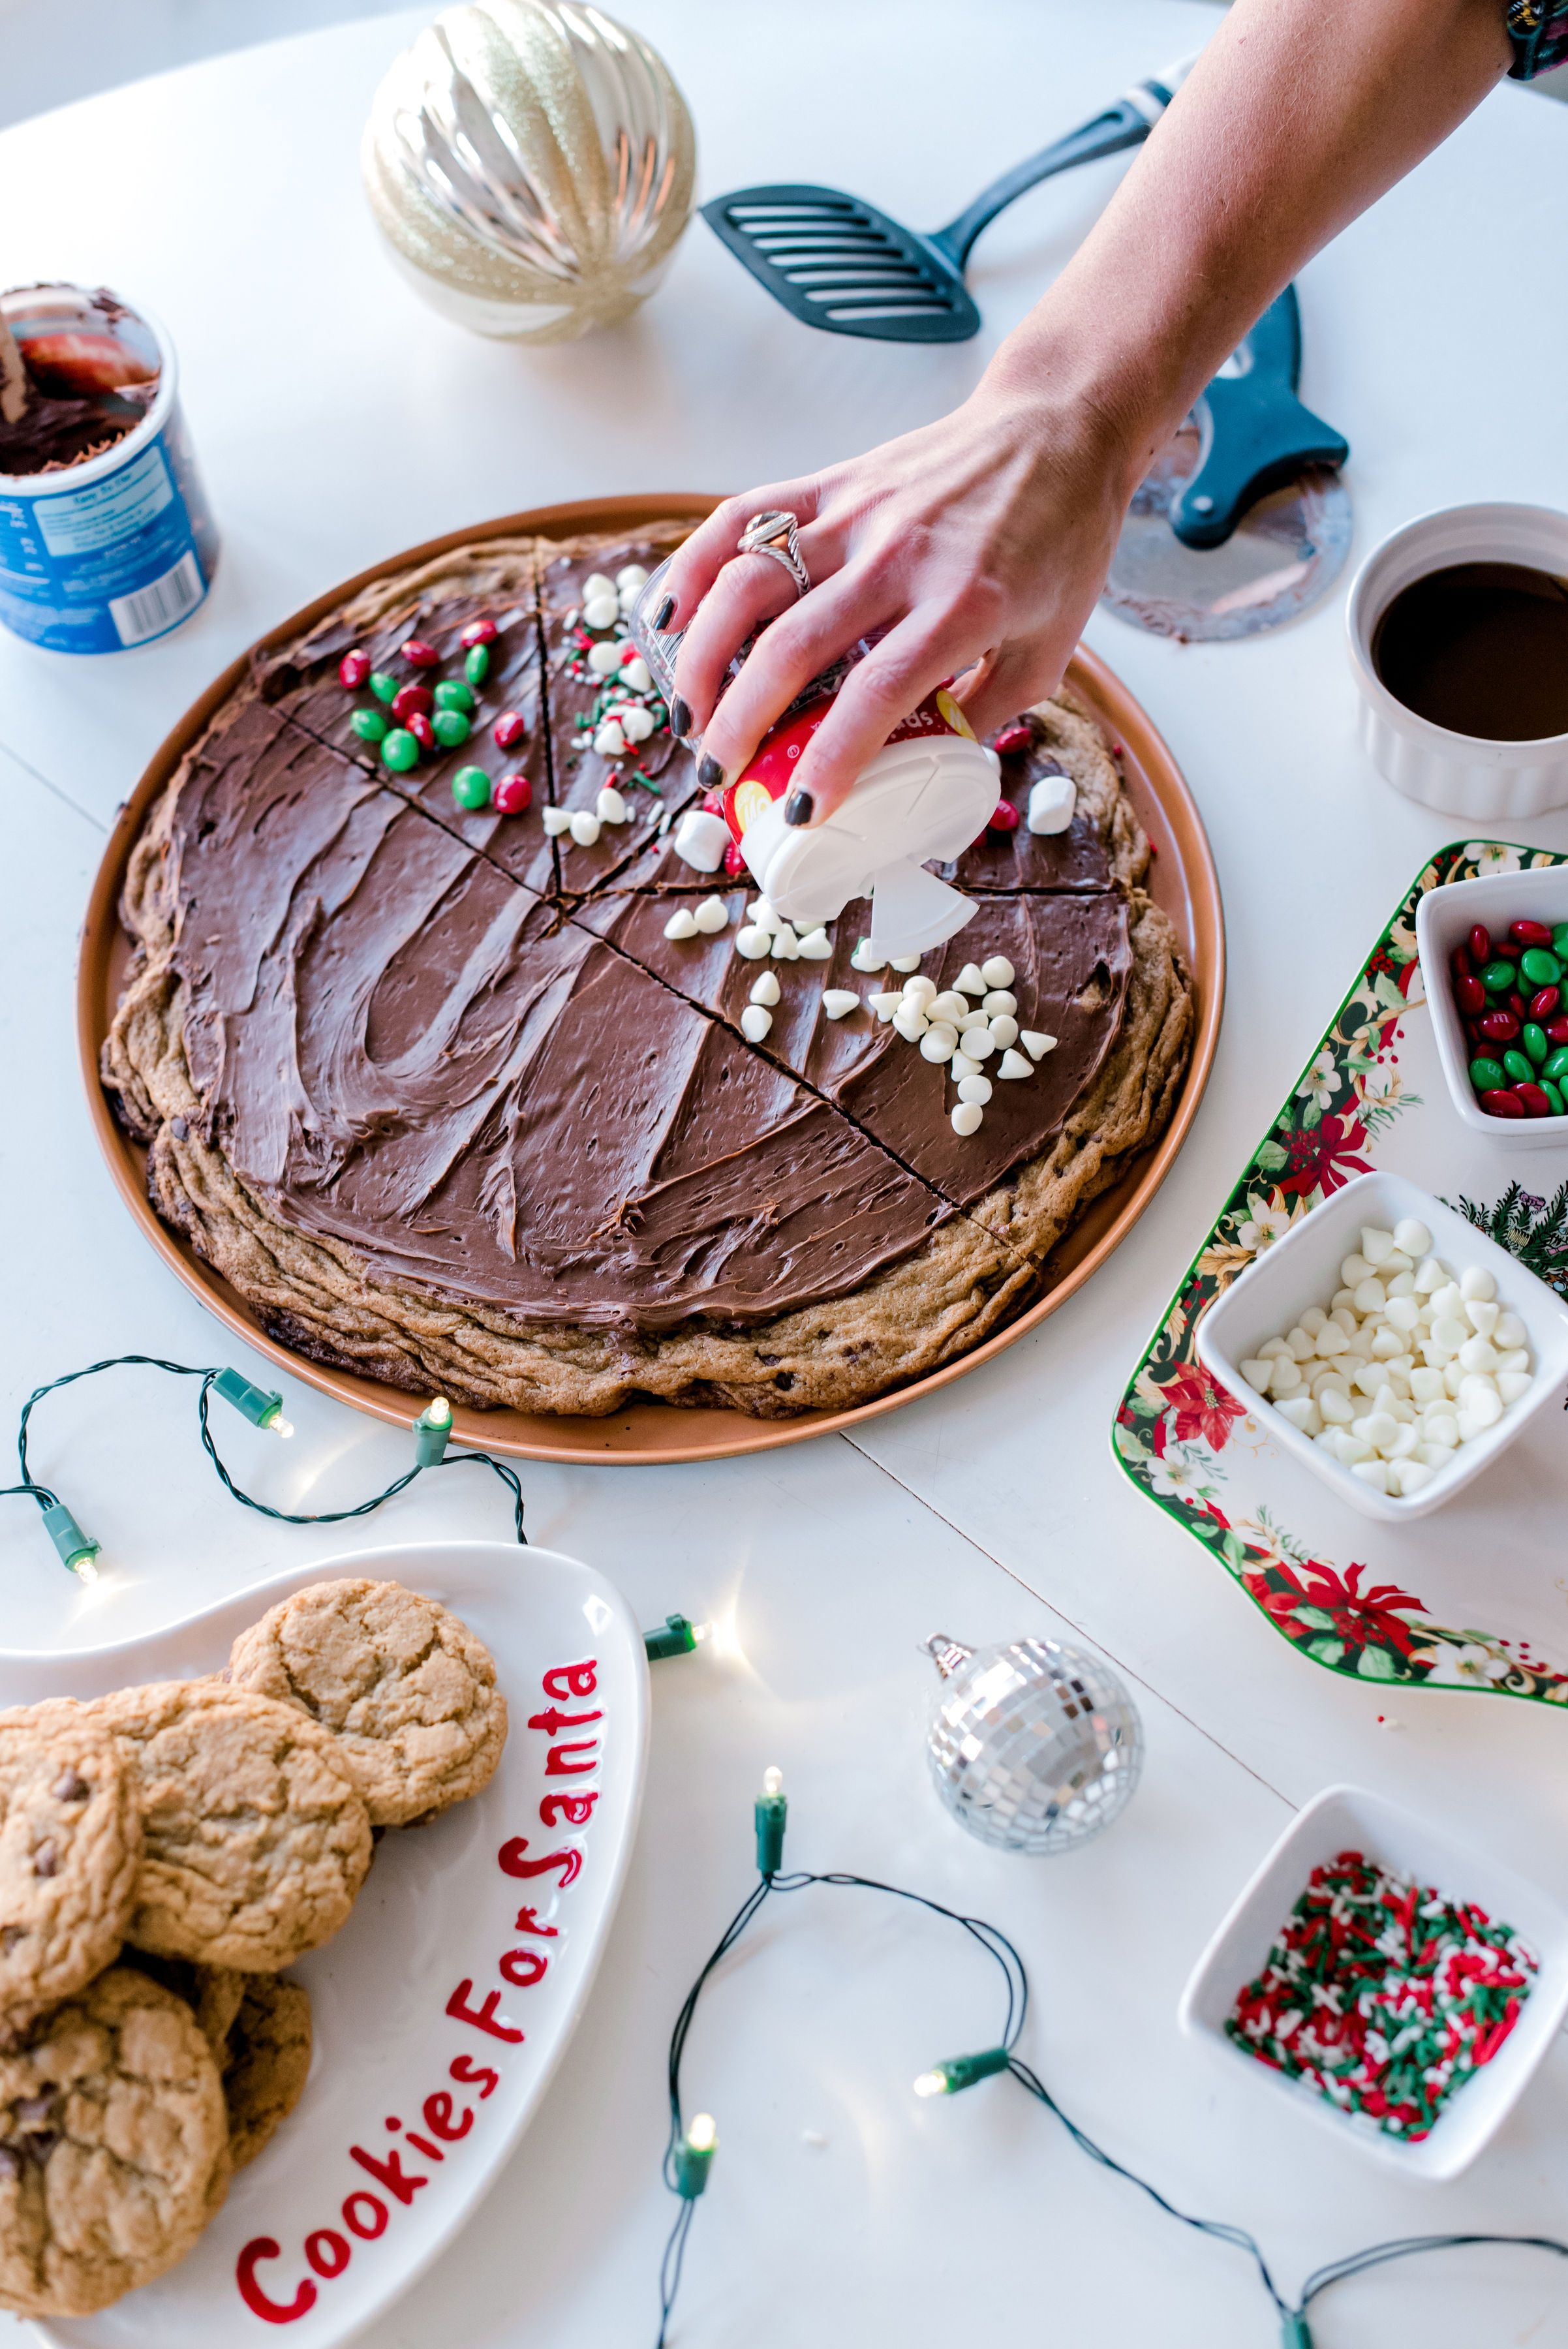 Easy Holiday Baking Recipes (With images)   Holiday baking ...